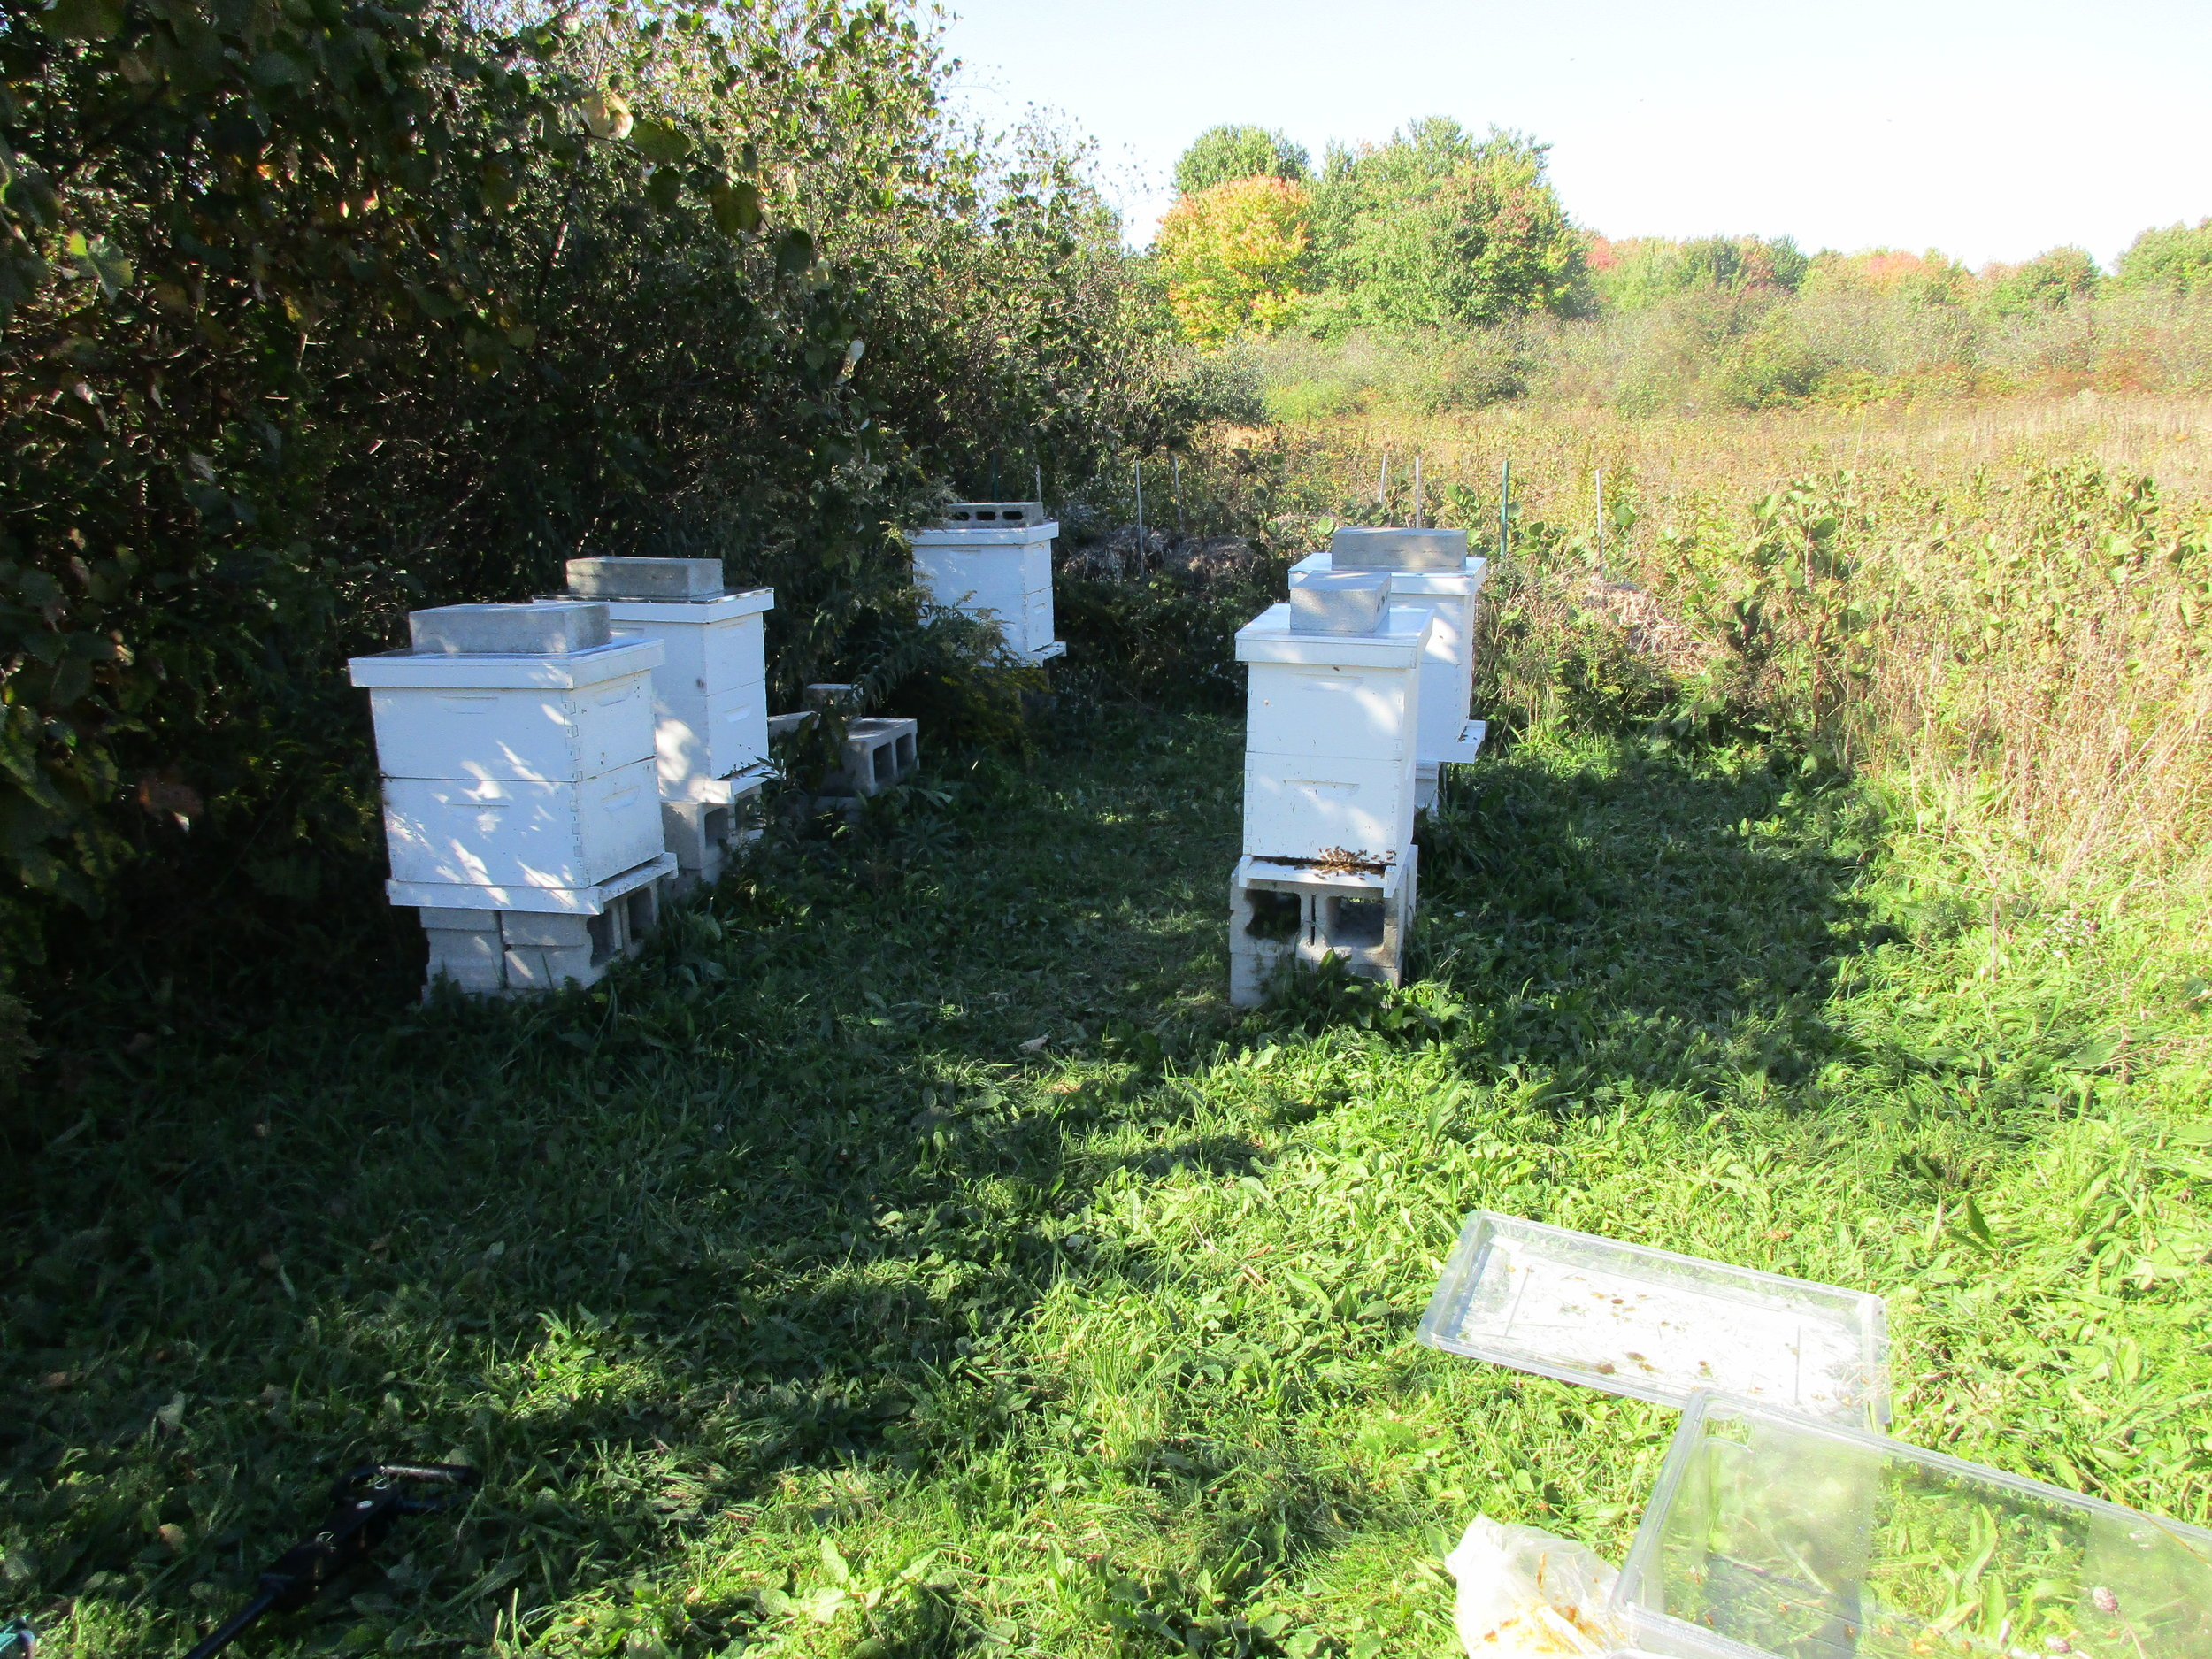 Hive 2, the one that is doomed, is the one at the back on the left.